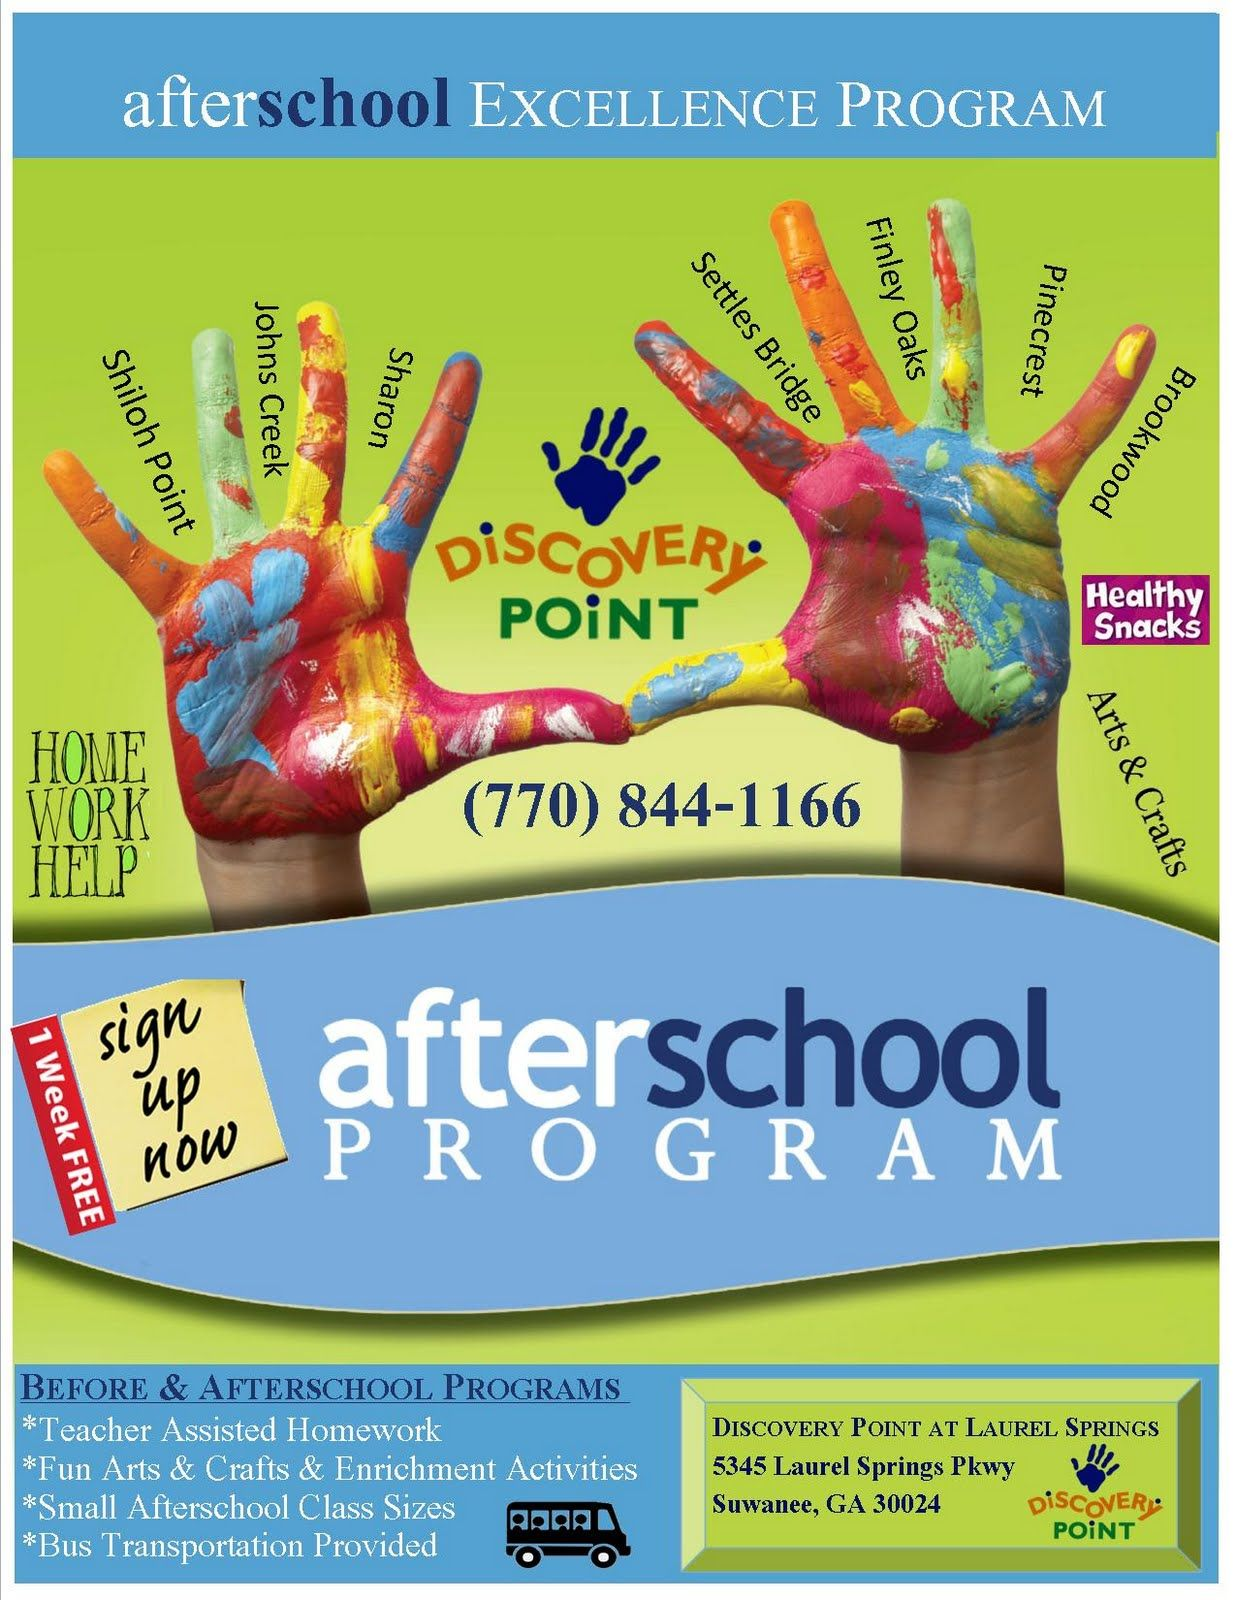 After School Program Poster With Images